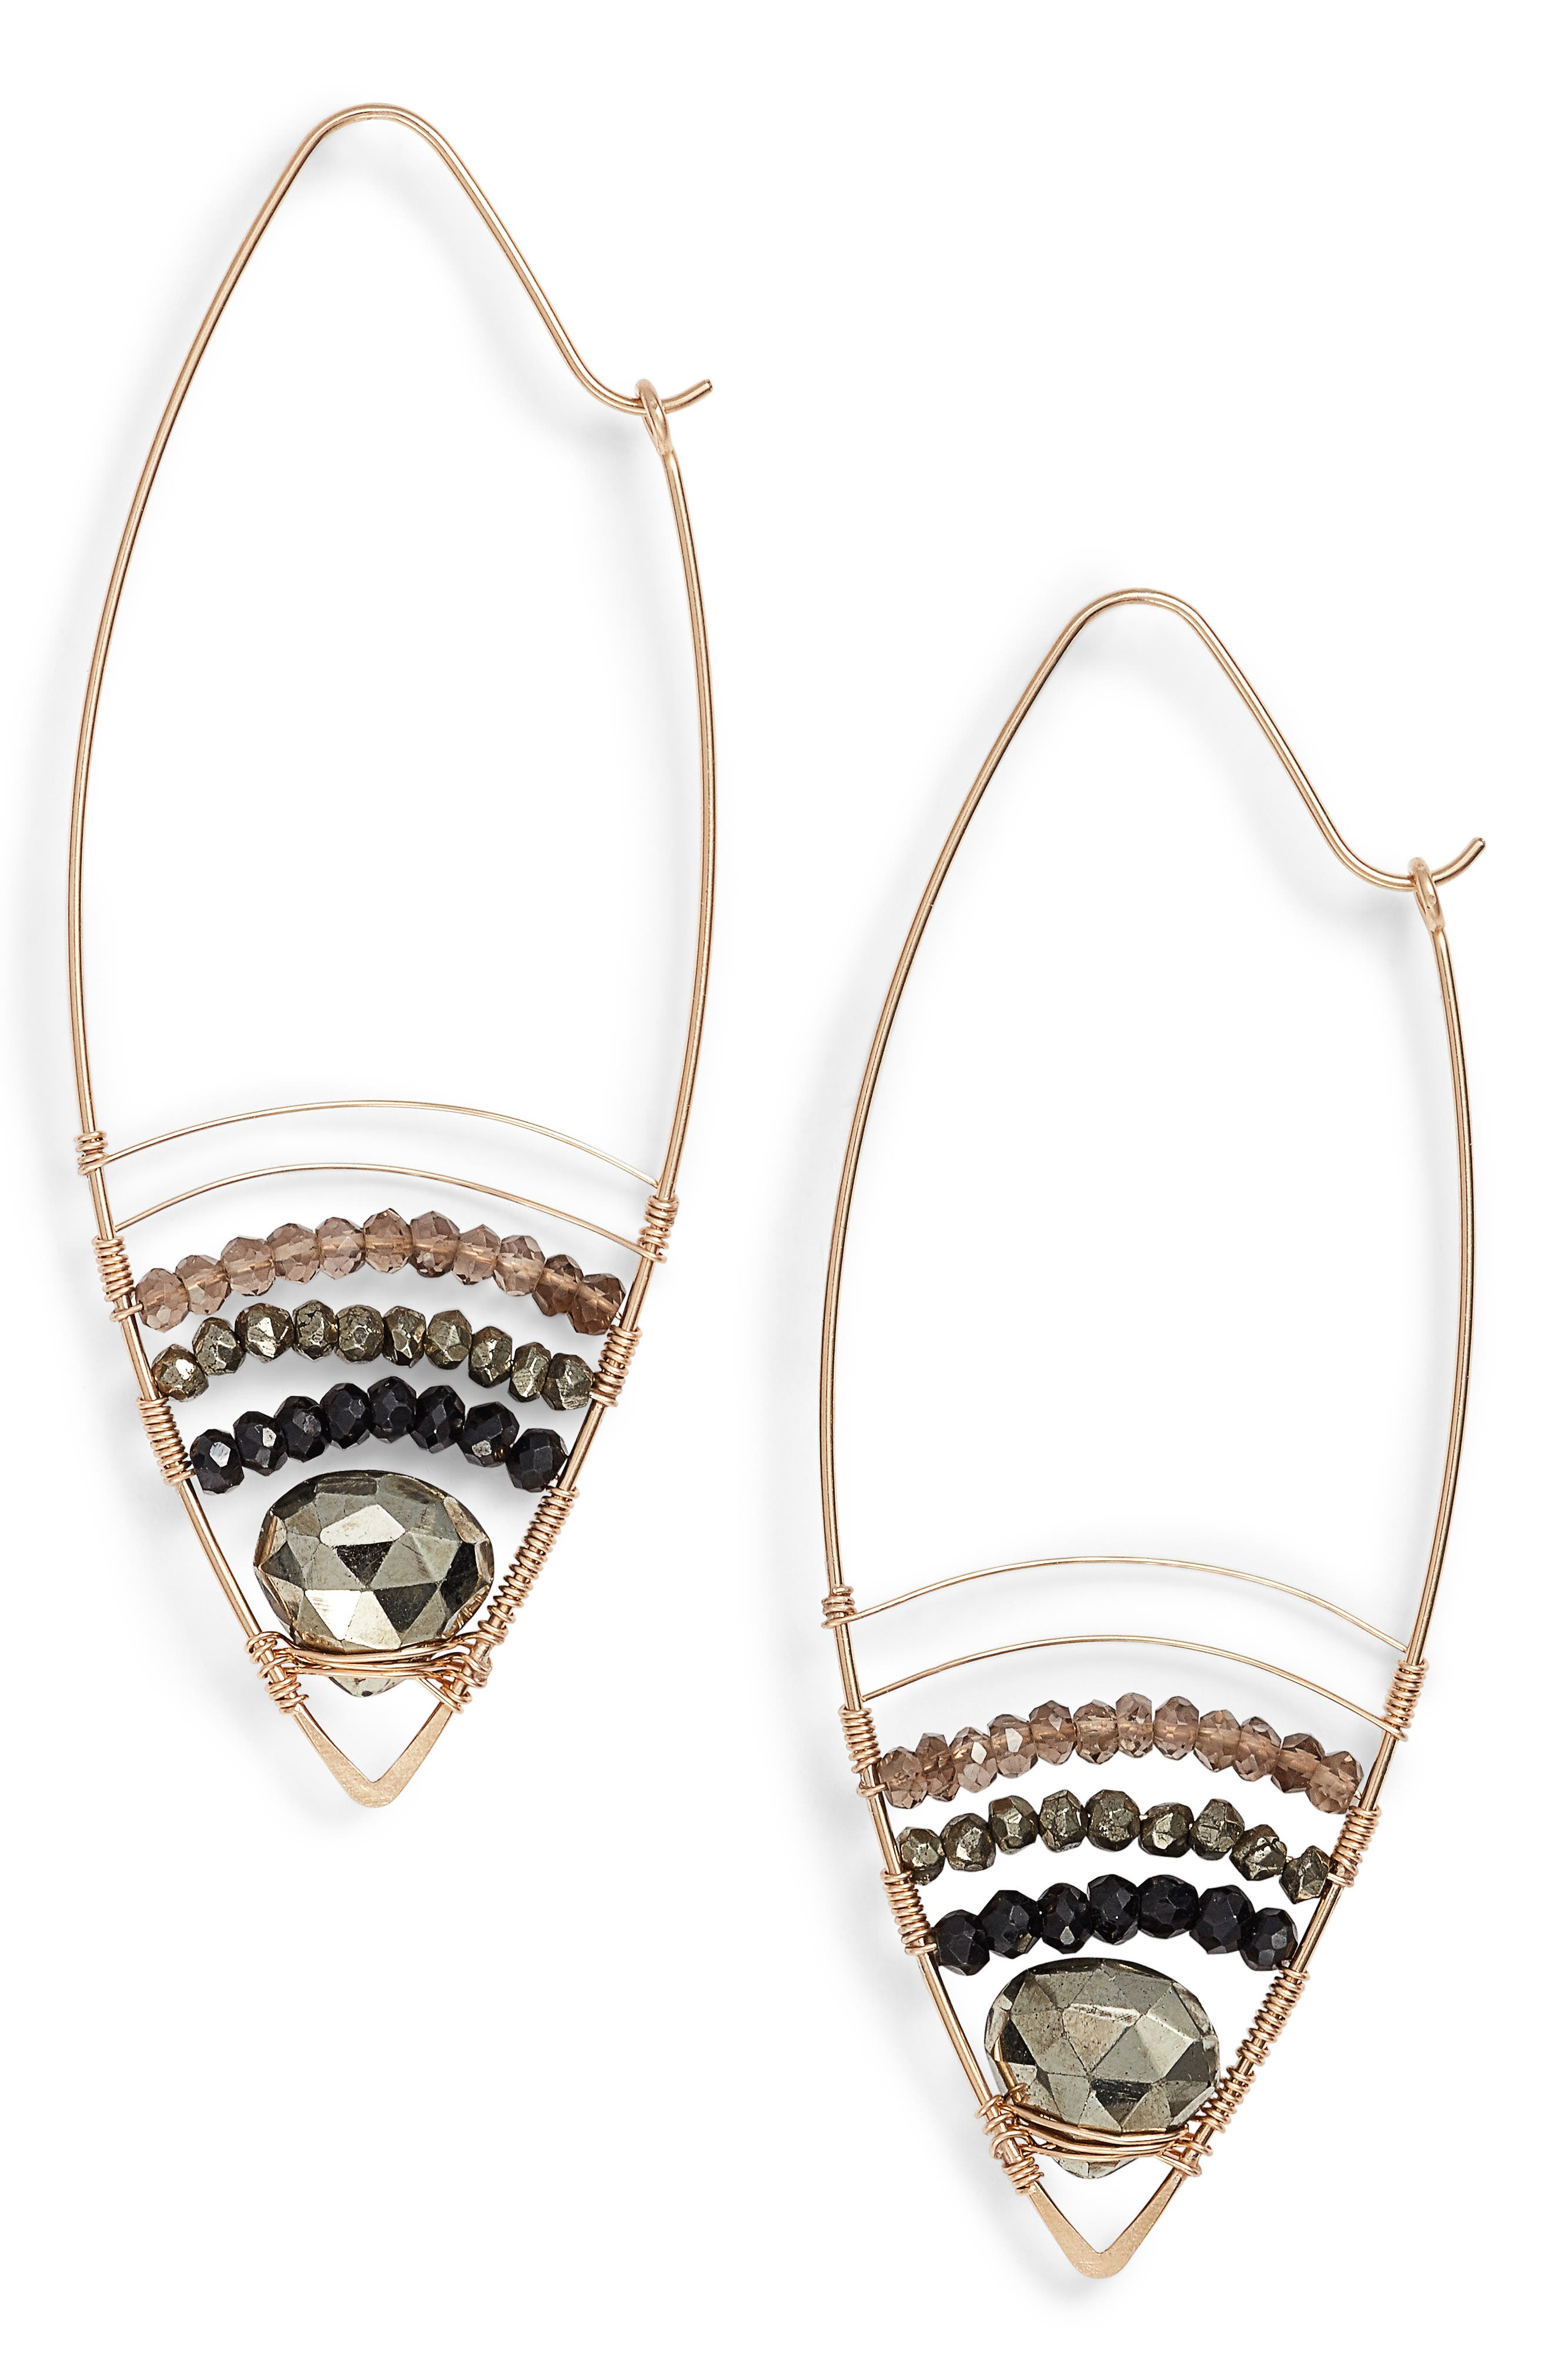 NASHELLE Cabana Golden Sand Oblong Hoop Earrings, Main, color, 001